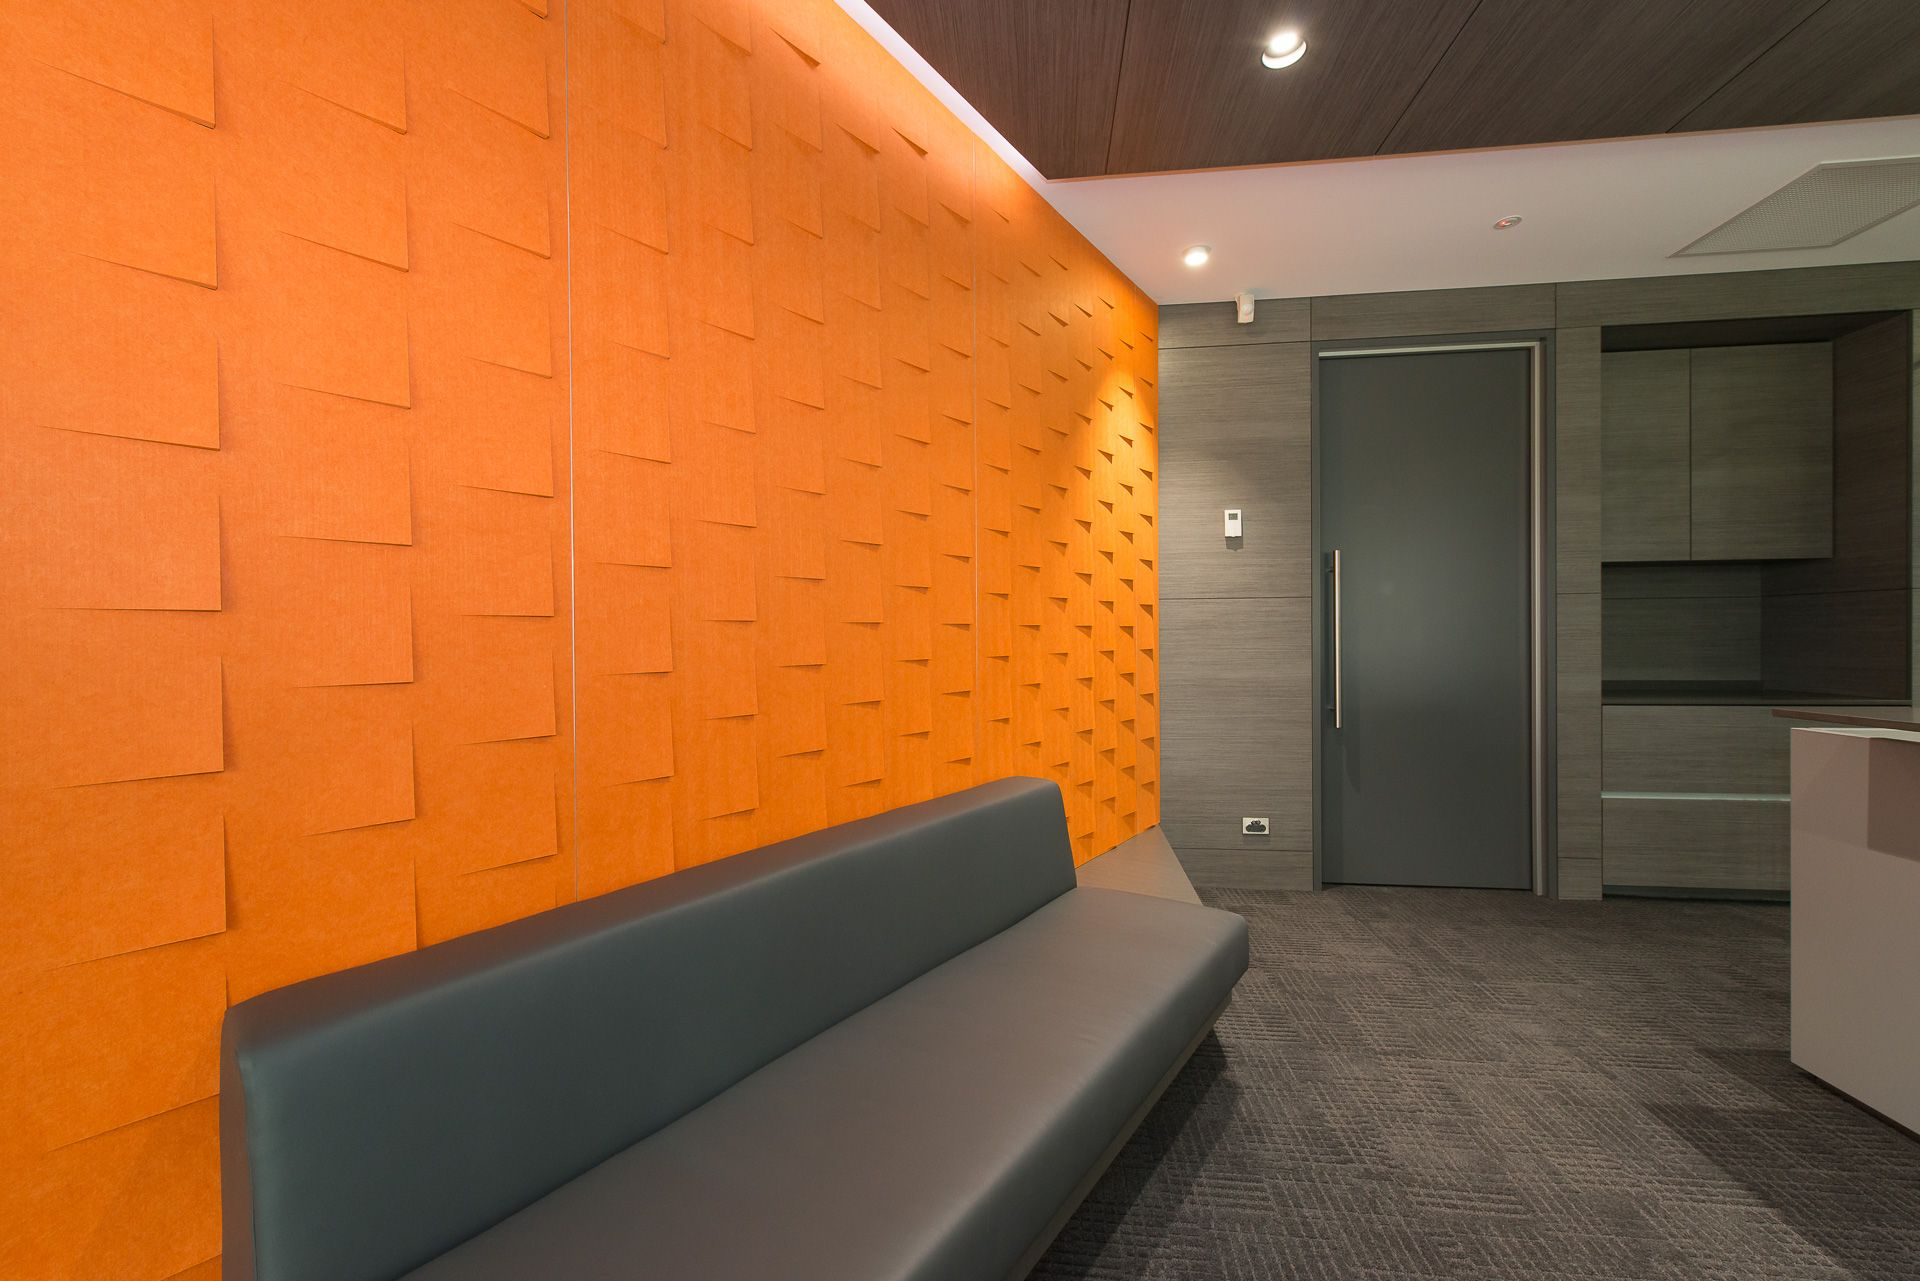 Kirei USA Decorative Wave Tiles Acoustic Panels | Architectural Materials |  Pinterest | Acoustic Panels, Architectural Materials And Curved Walls